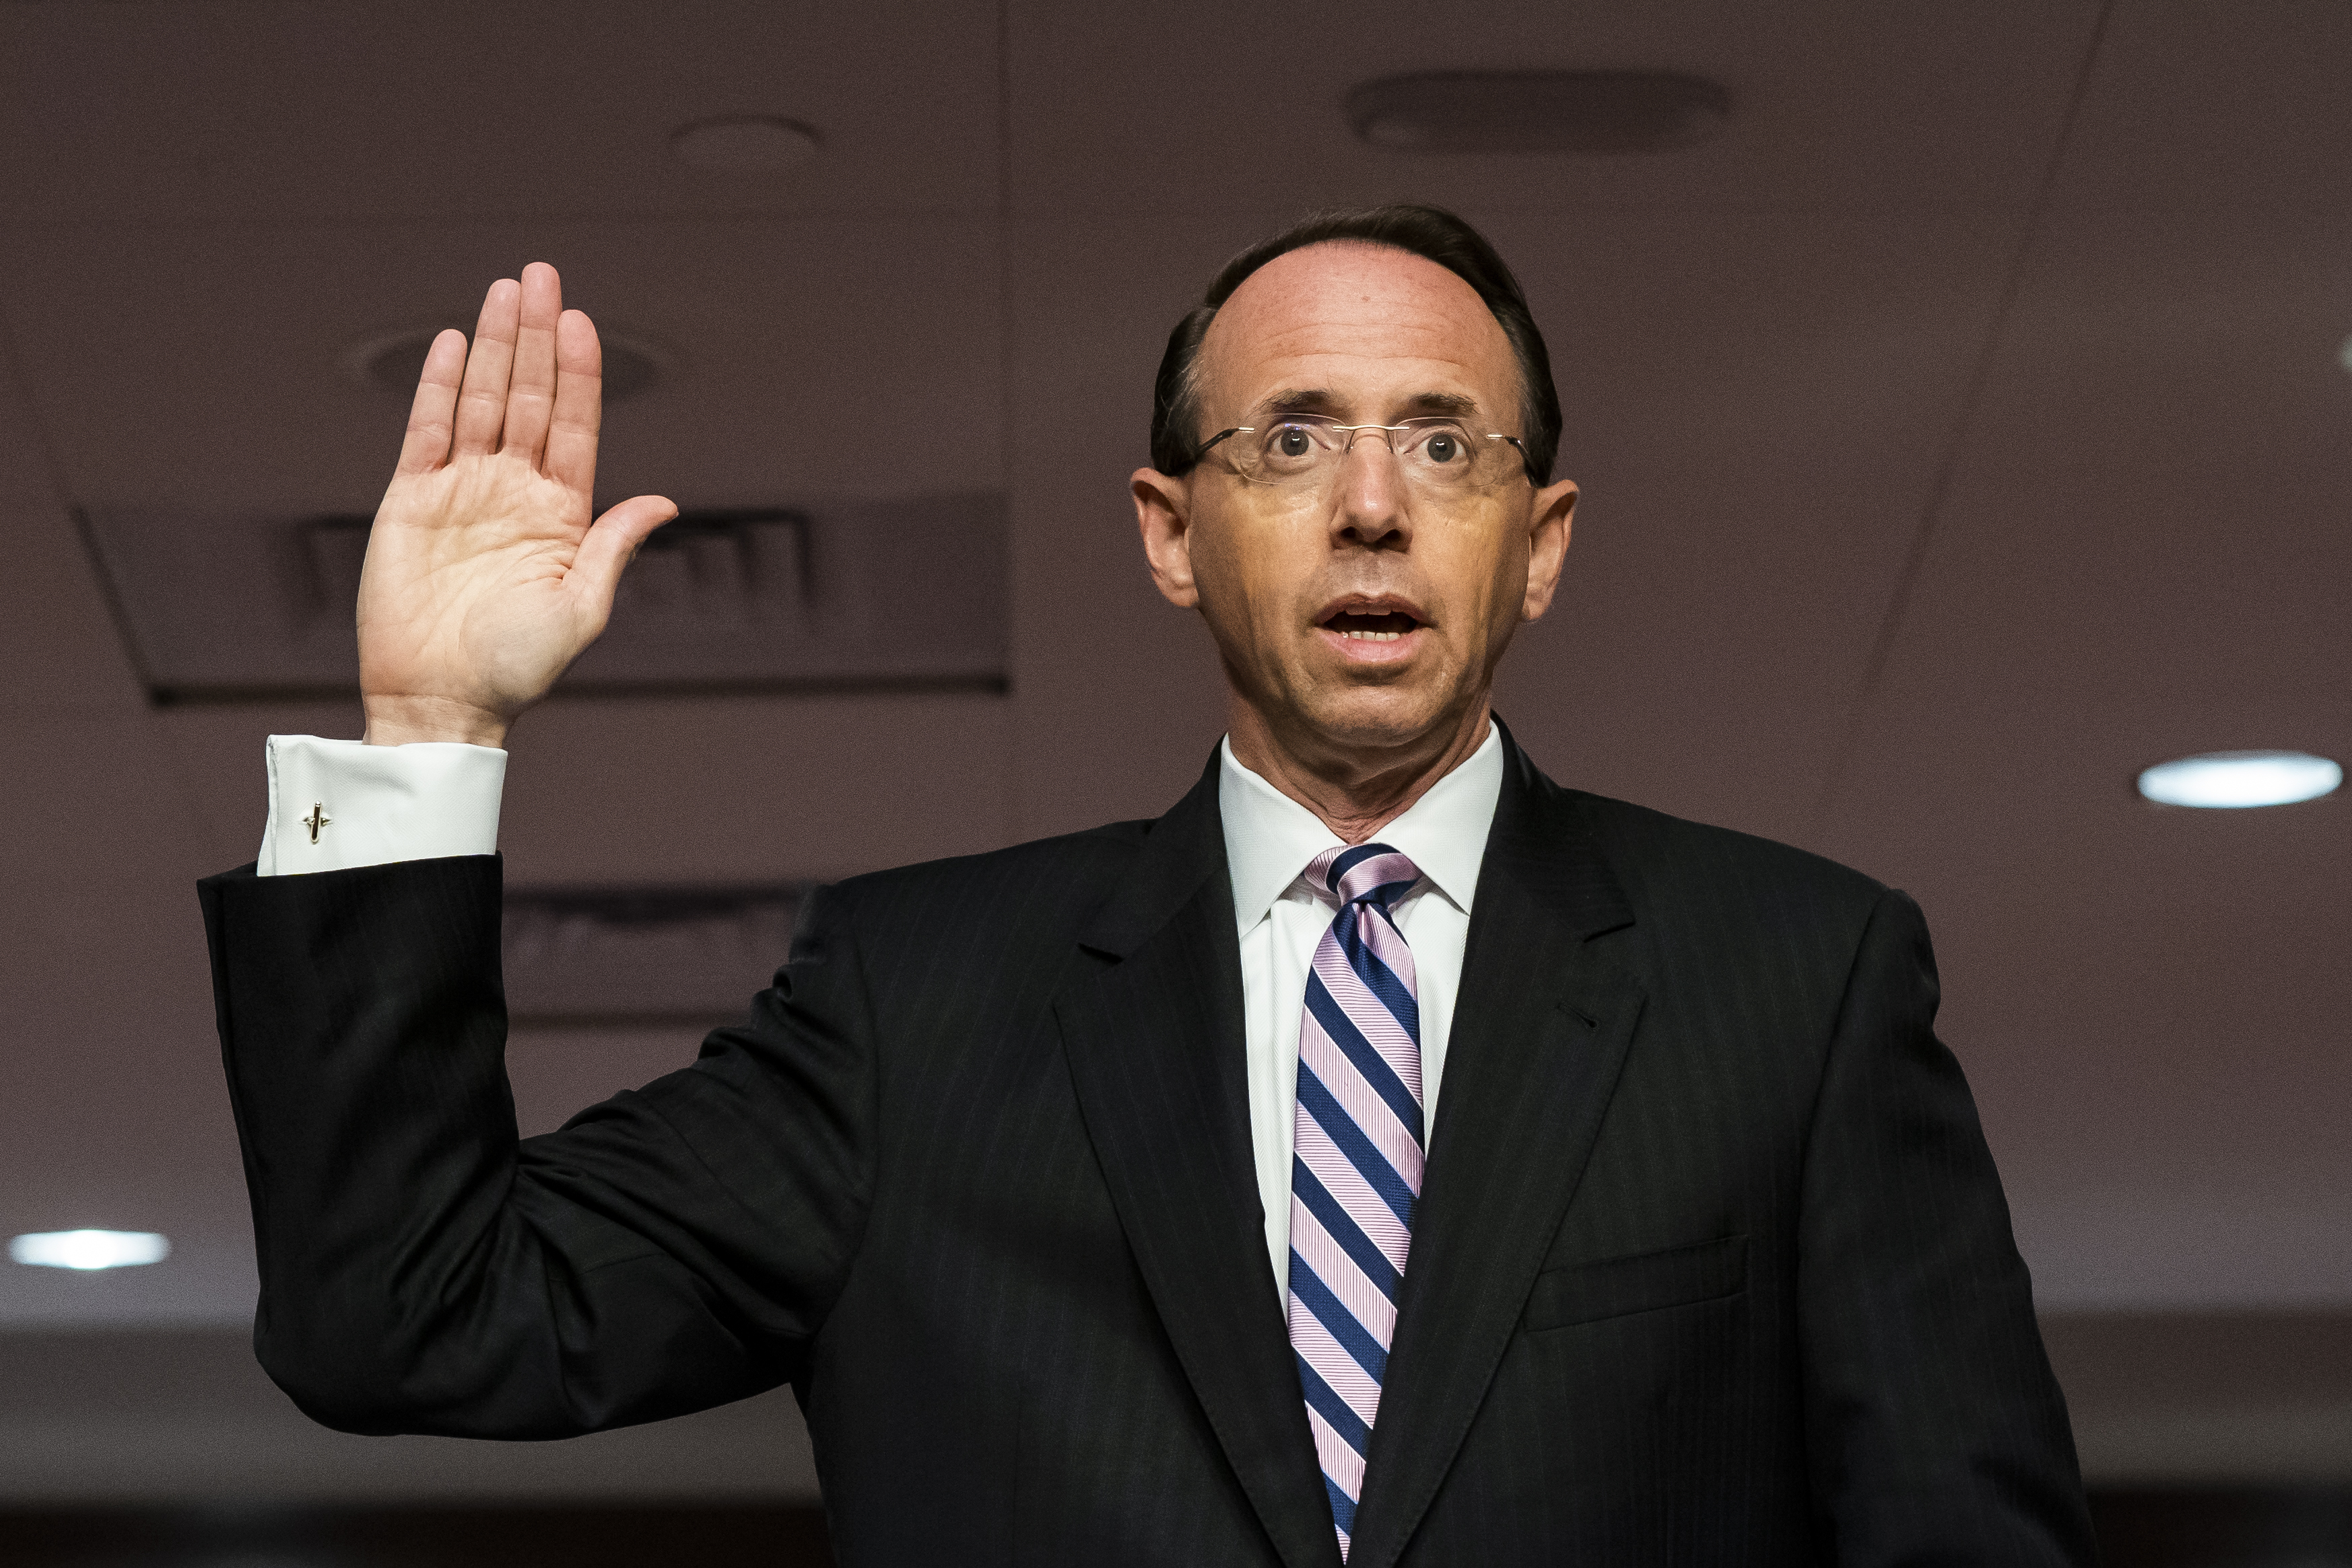 Former Deputy Attorney General Rod Rosenstein is sworn in before a Senate Judiciary Committee hearing on Capitol Hill in Washington, Wednesday, June 3, 2020.